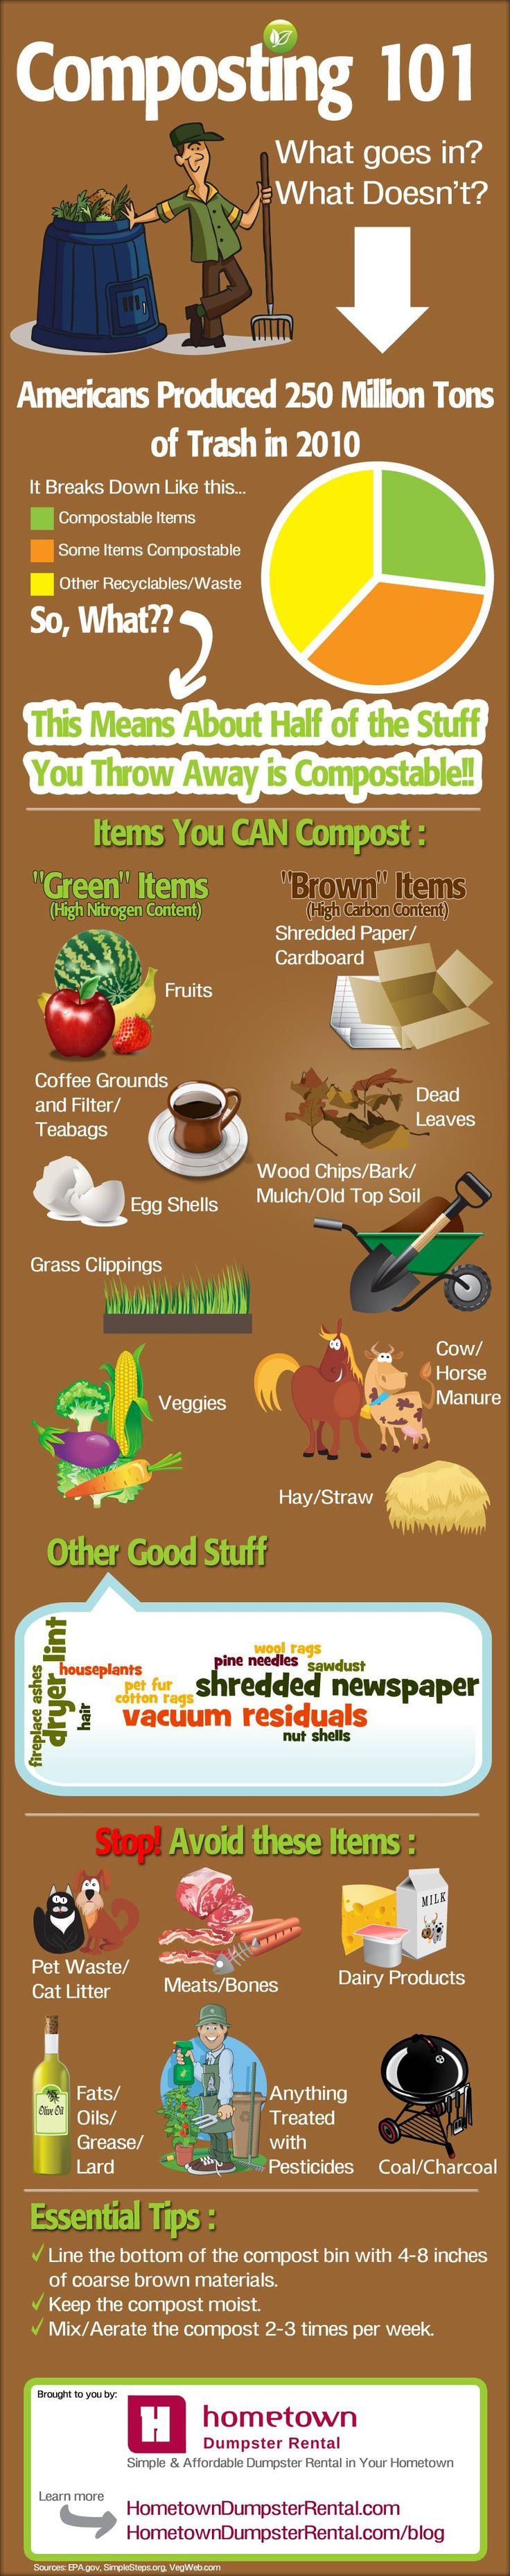 Infographic shows composting Do's and Dont's. Composting was a fantastic project. We set up 4 barrels: veggies only; veggies and bread; veggies and fruit, and the last with just about anything. Obviously the fourth was disgusting after week 2.